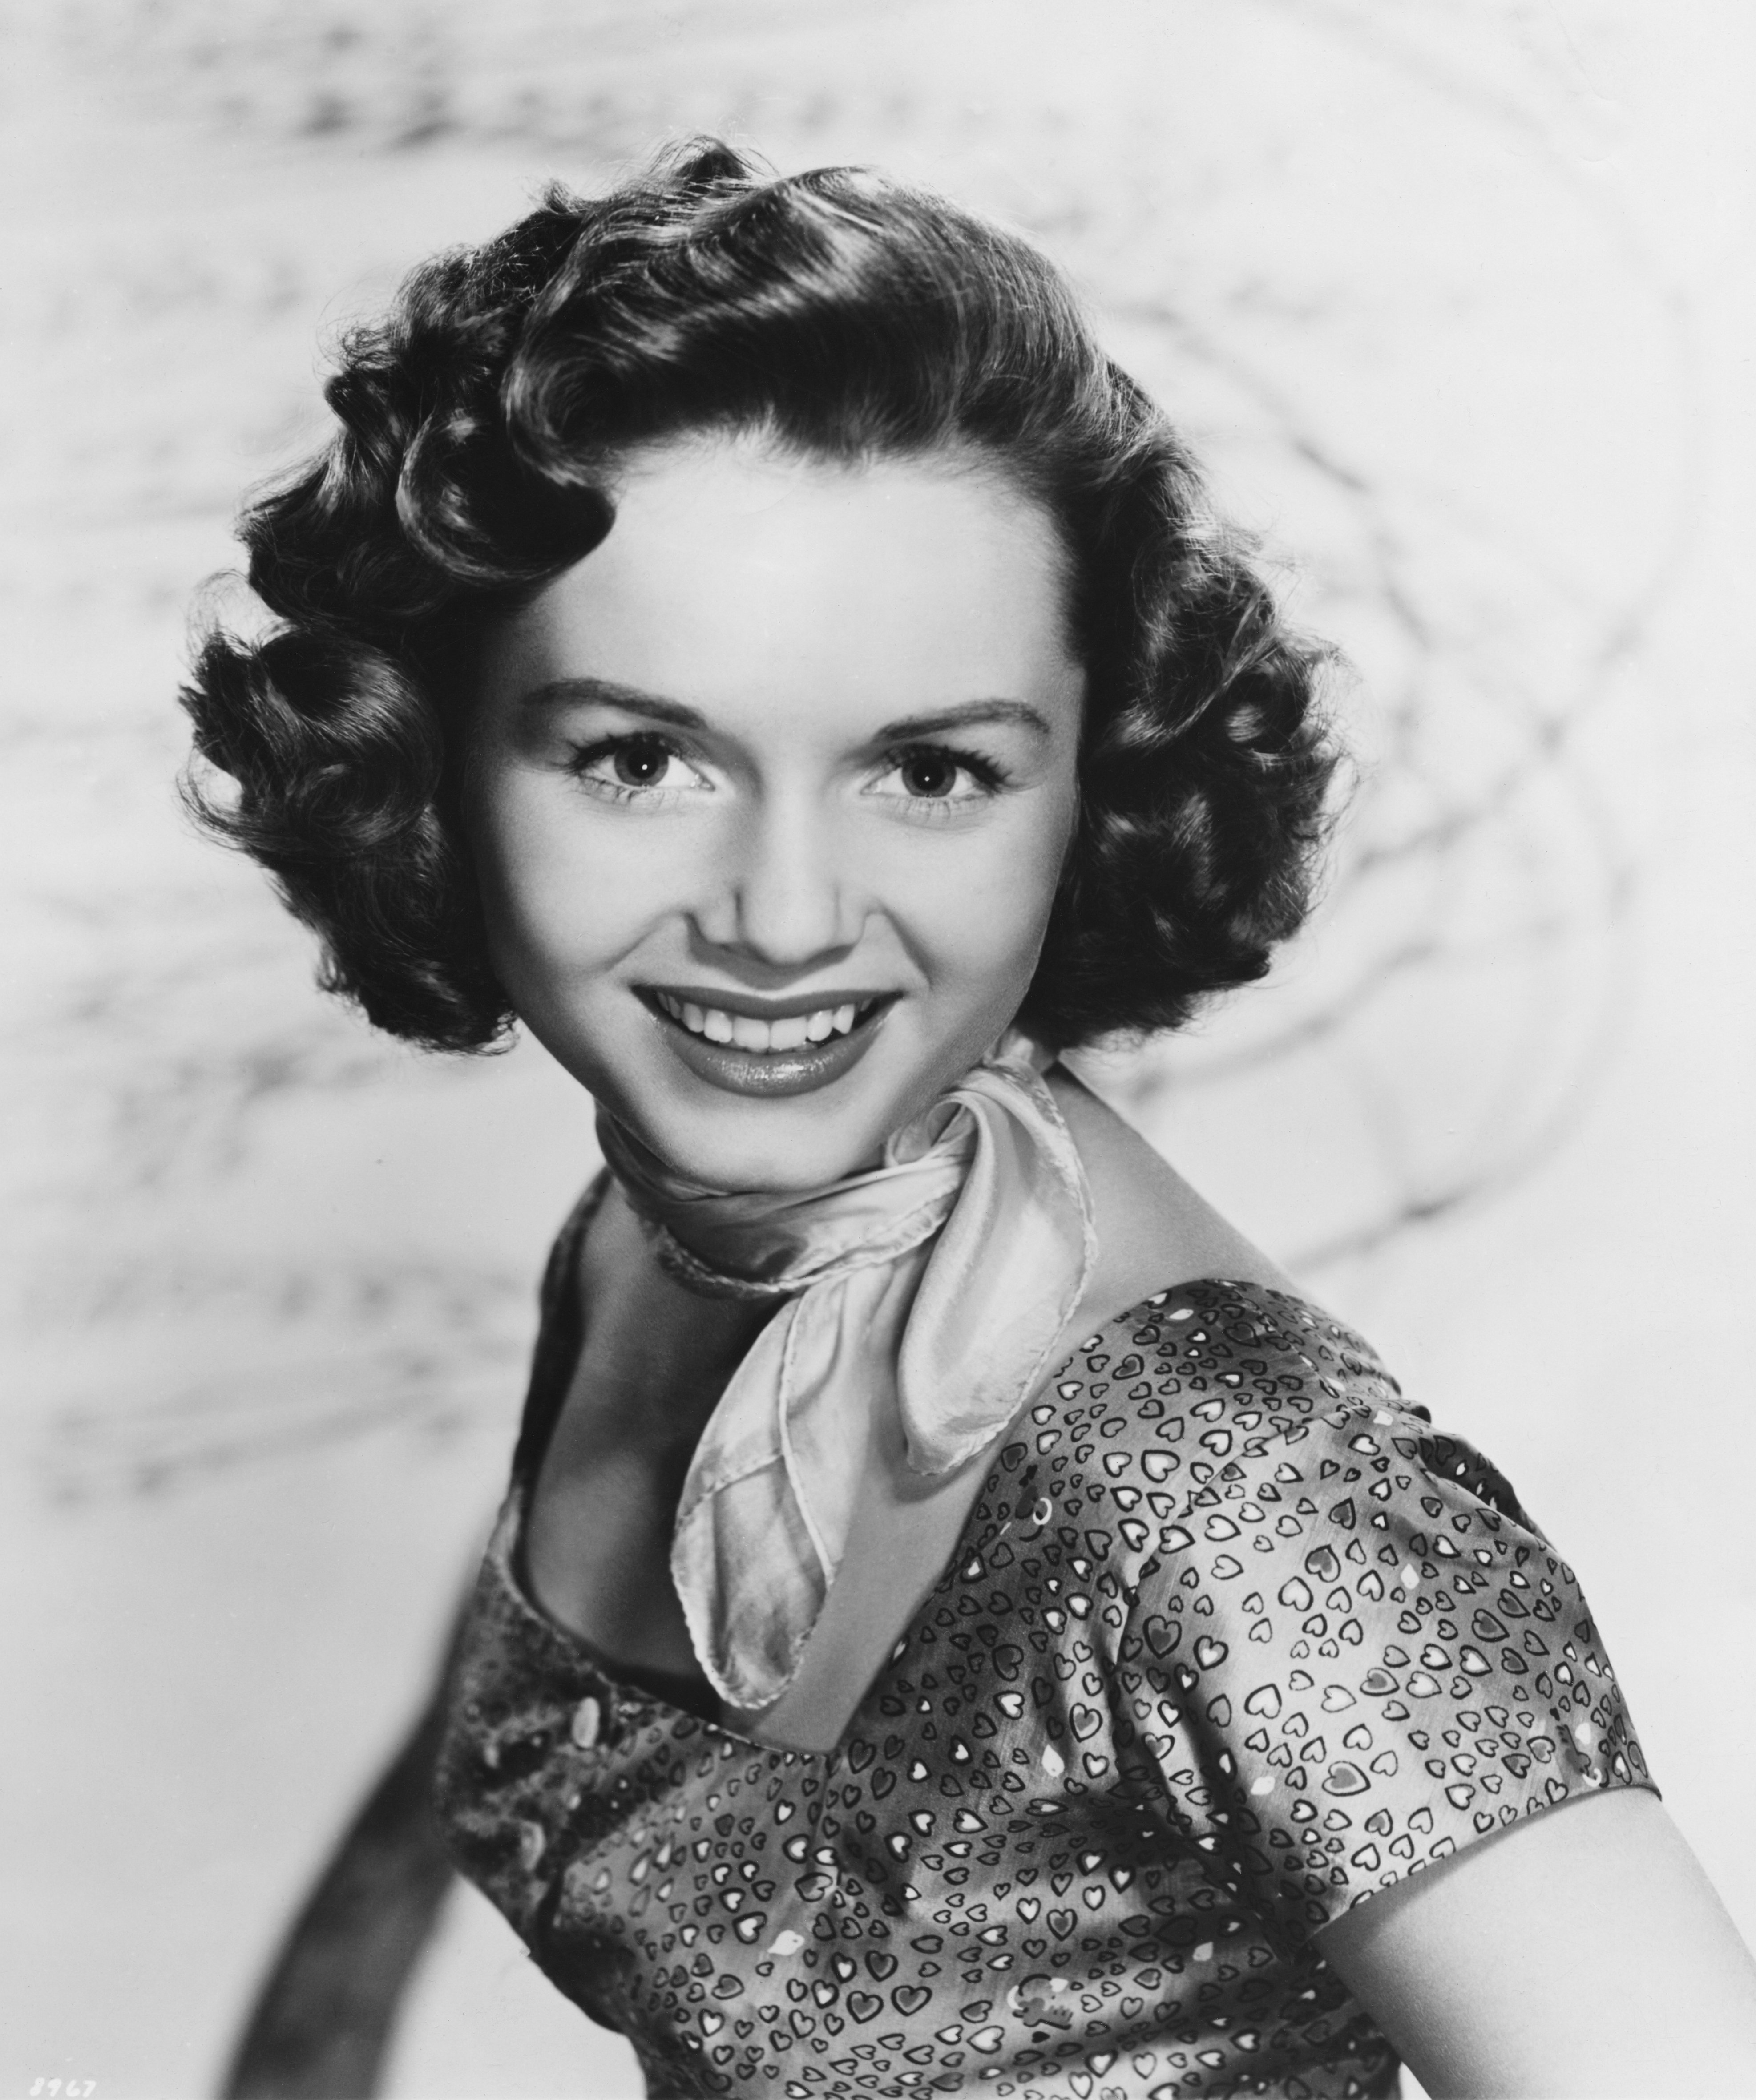 Debbie Reynolds. I Image: Getty Images.